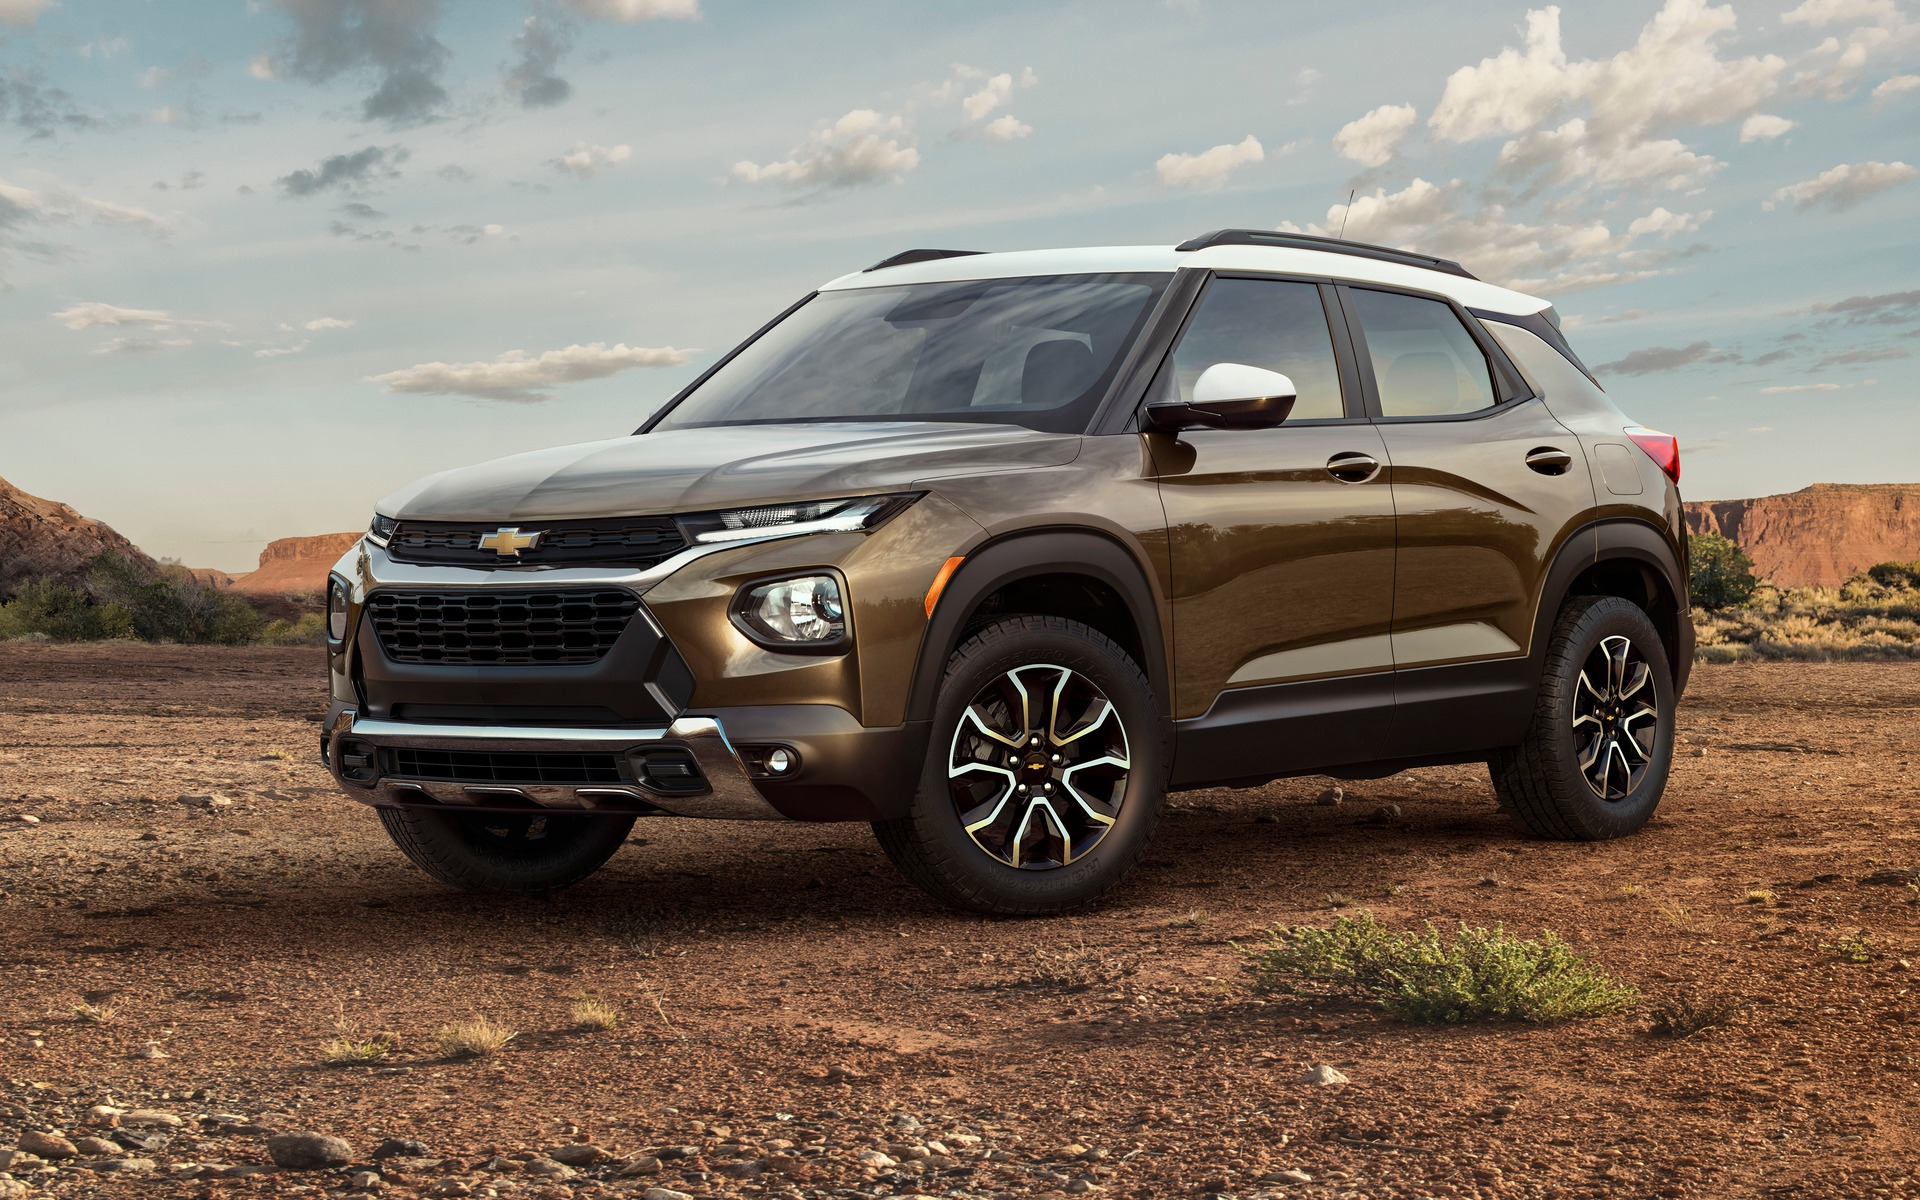 2021 chevrolet trailblazer makes north american debut